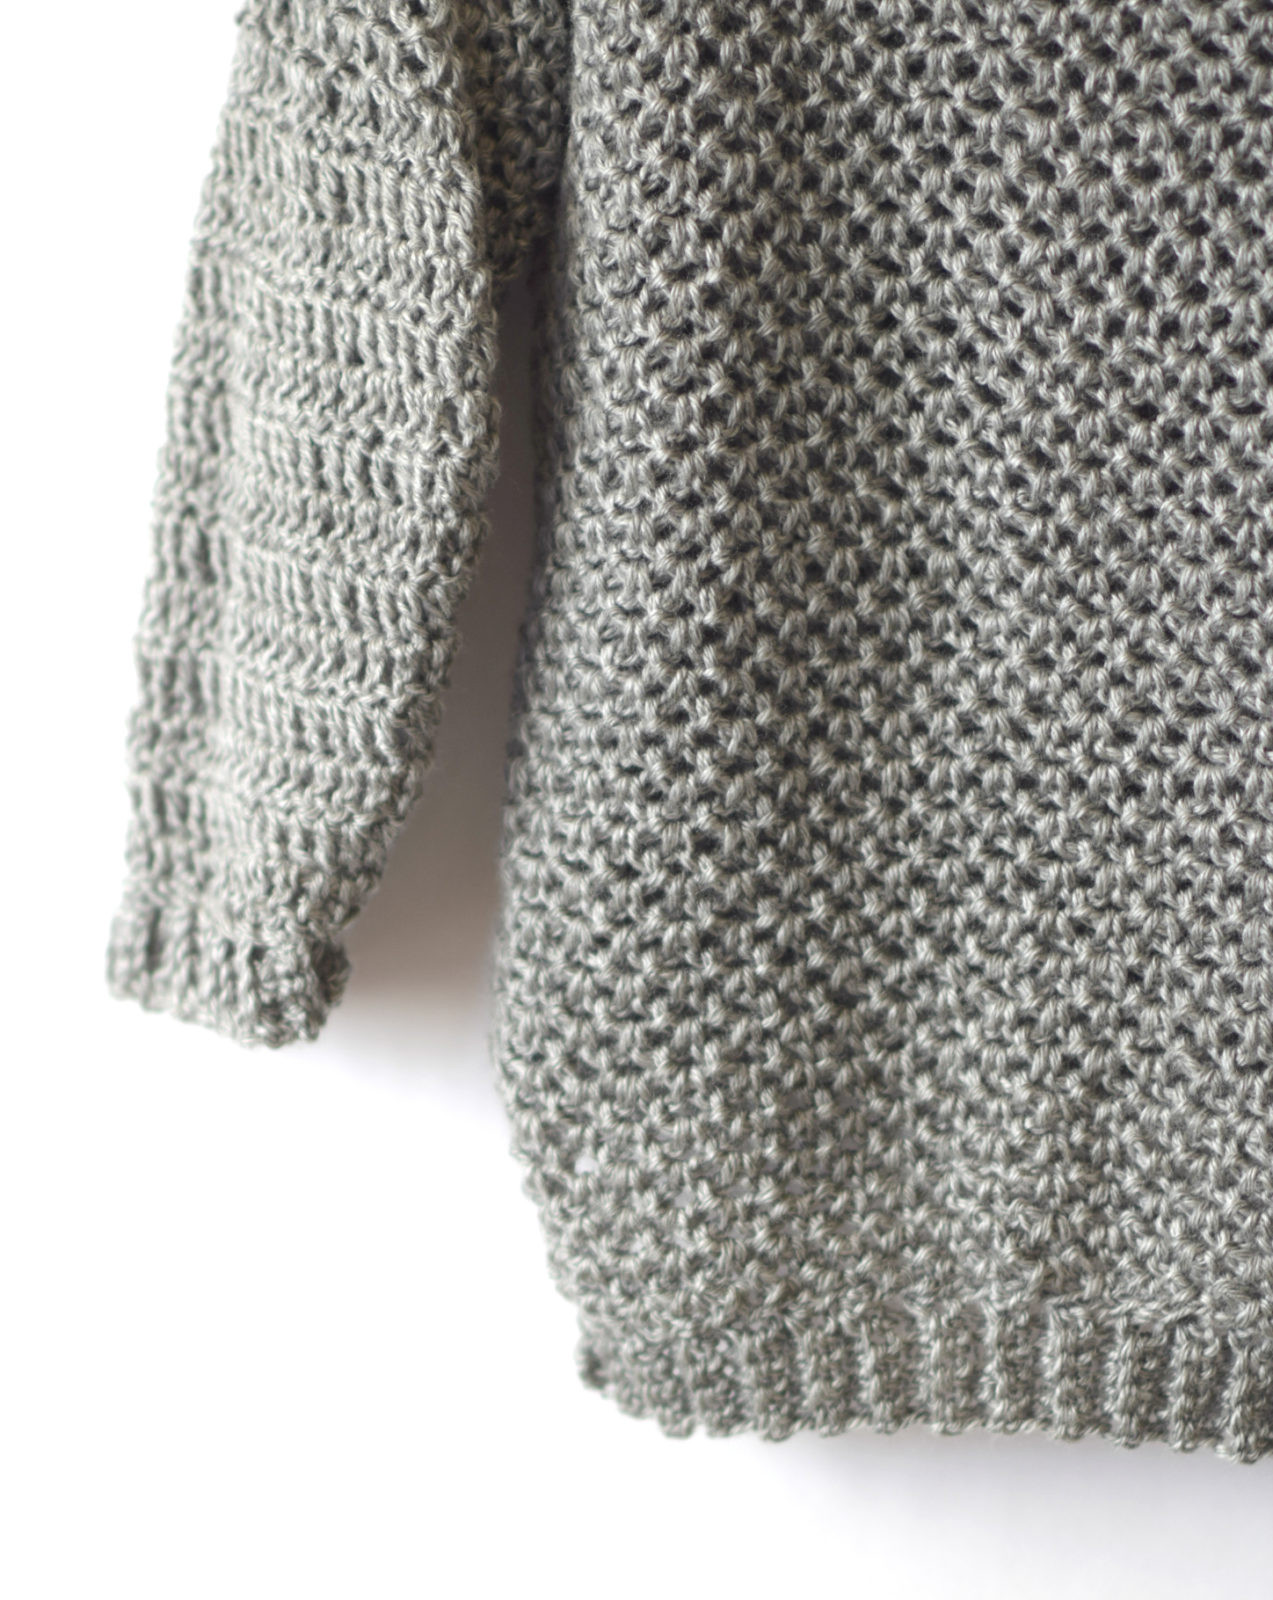 Crochet Sweater Patterns Luxury How to Make An Easy Crocheted Sweater Knit Like – Mama Of Adorable 40 Ideas Crochet Sweater Patterns